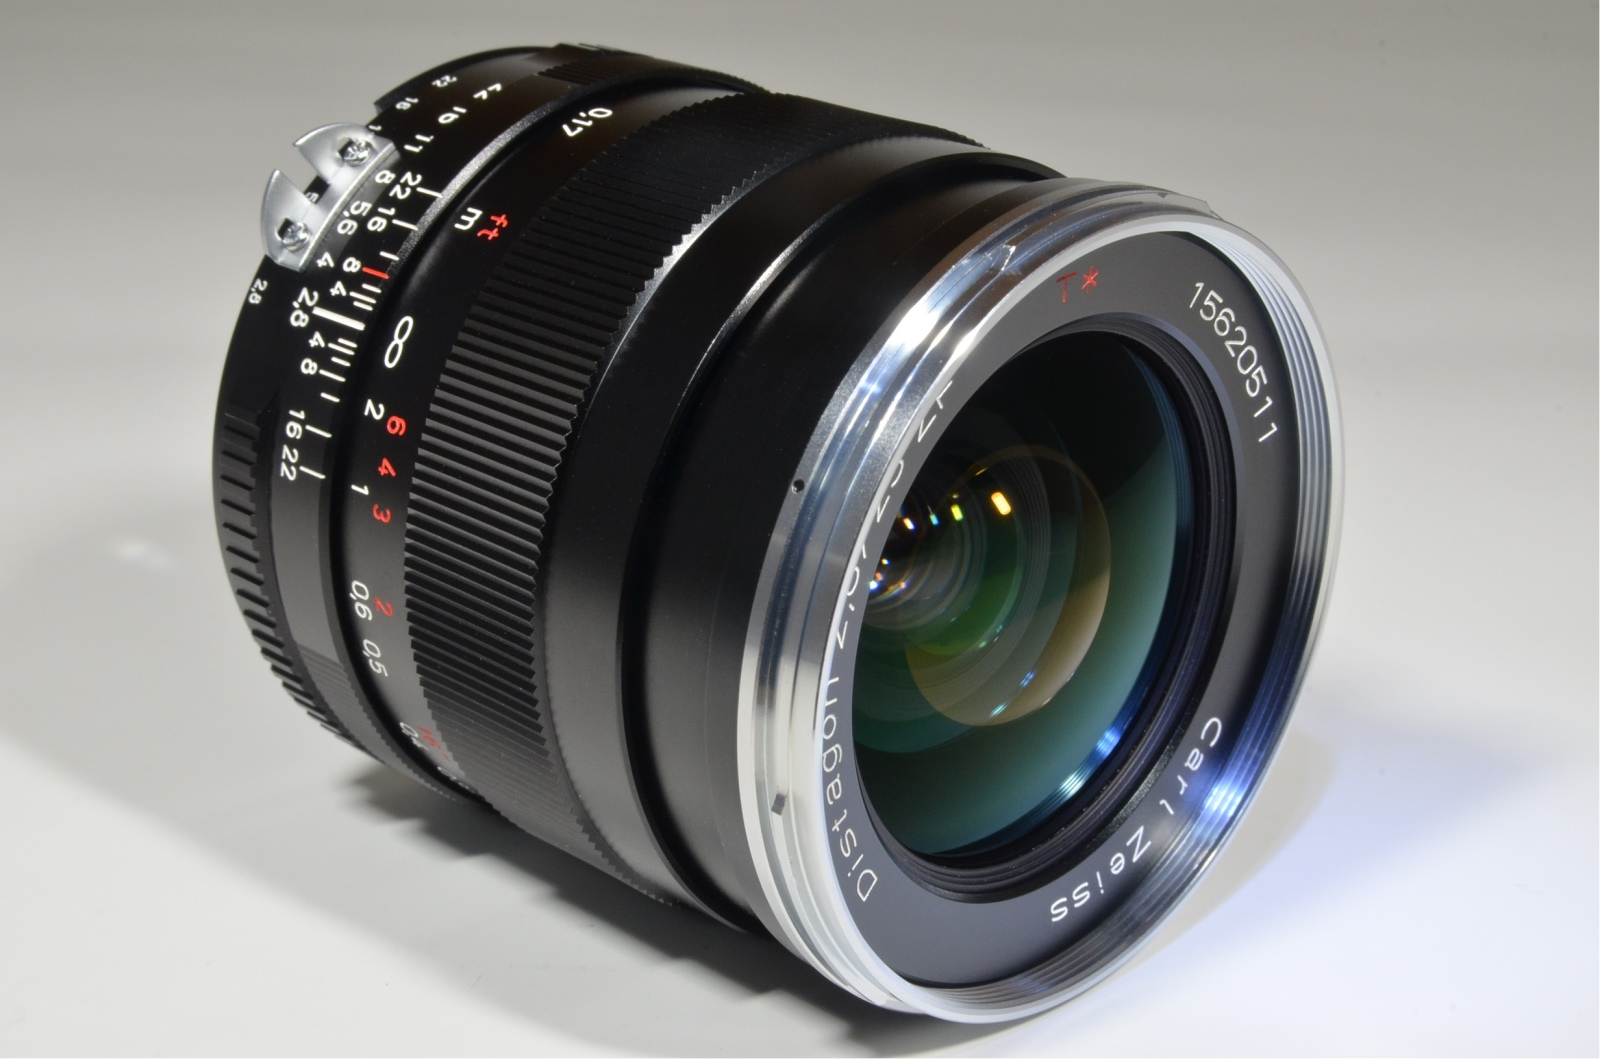 carl zeiss distagon t* 25mm f2.8 zf for nikon